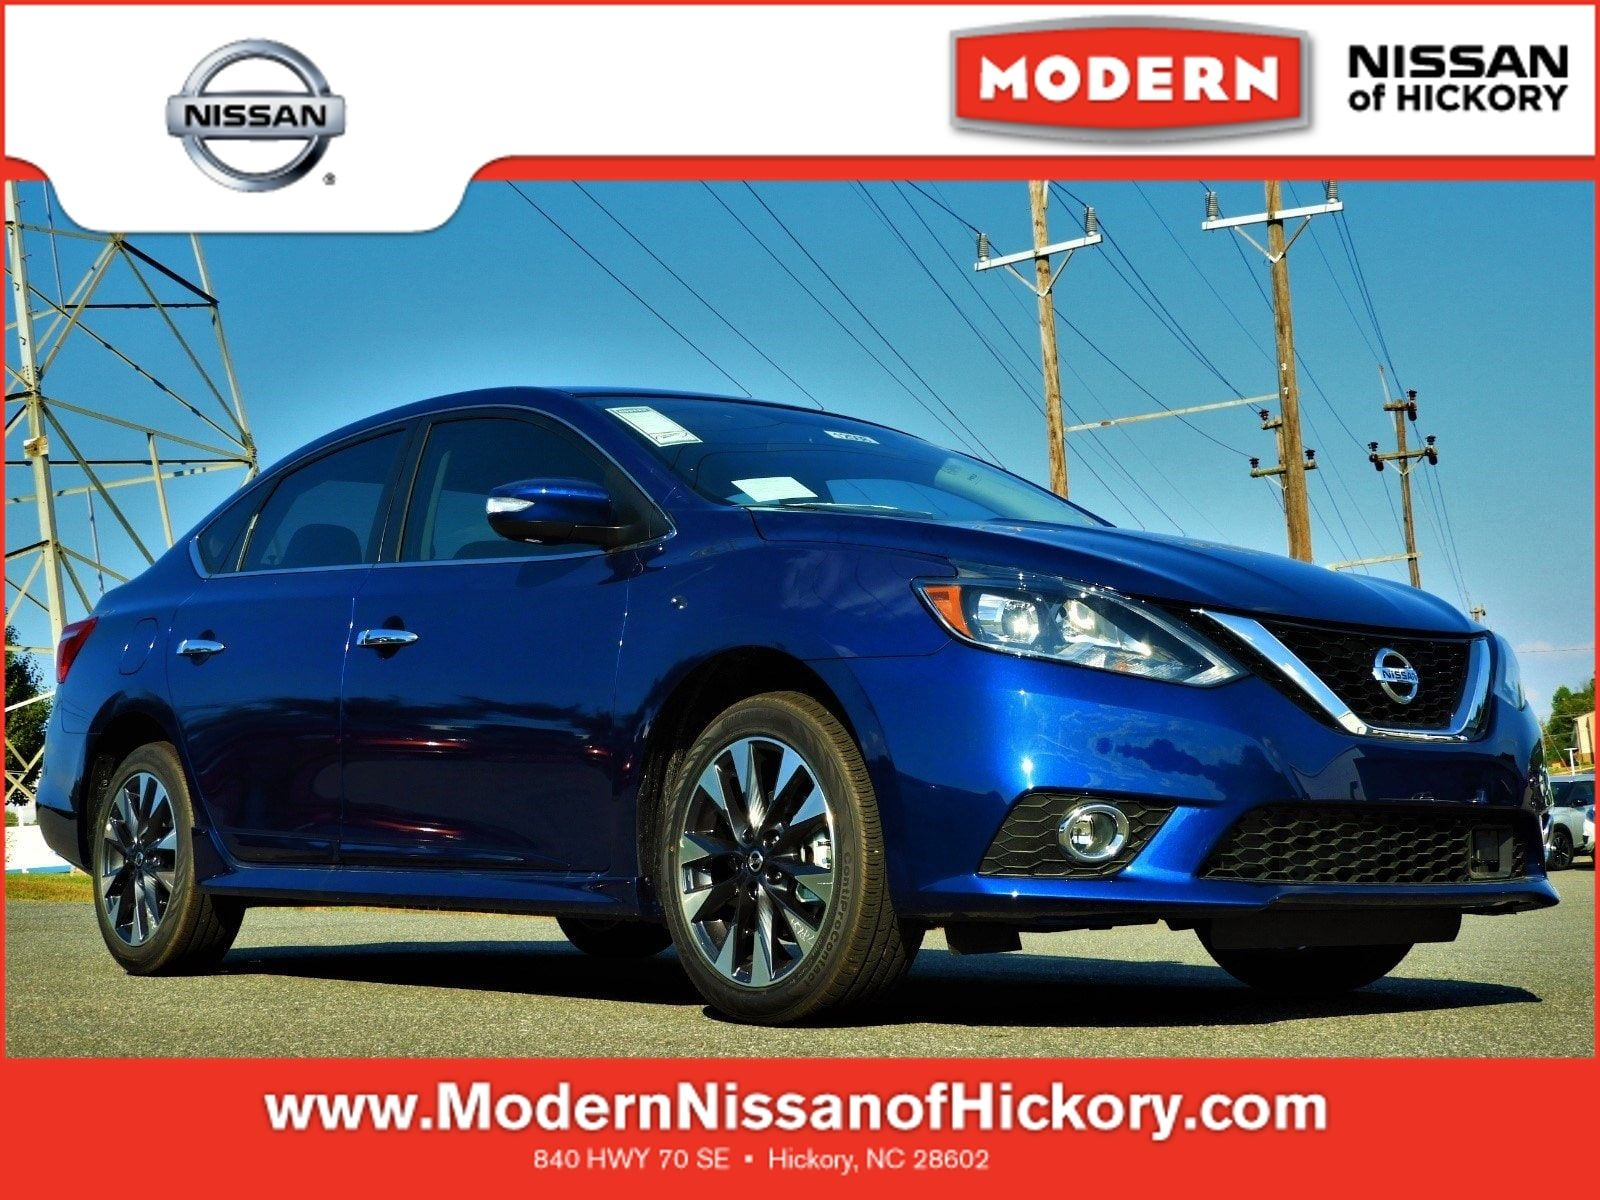 2019 Nissan Sentra Check More At Http Www New Cars Club 2018 12 05 2019 Nissan Sentra